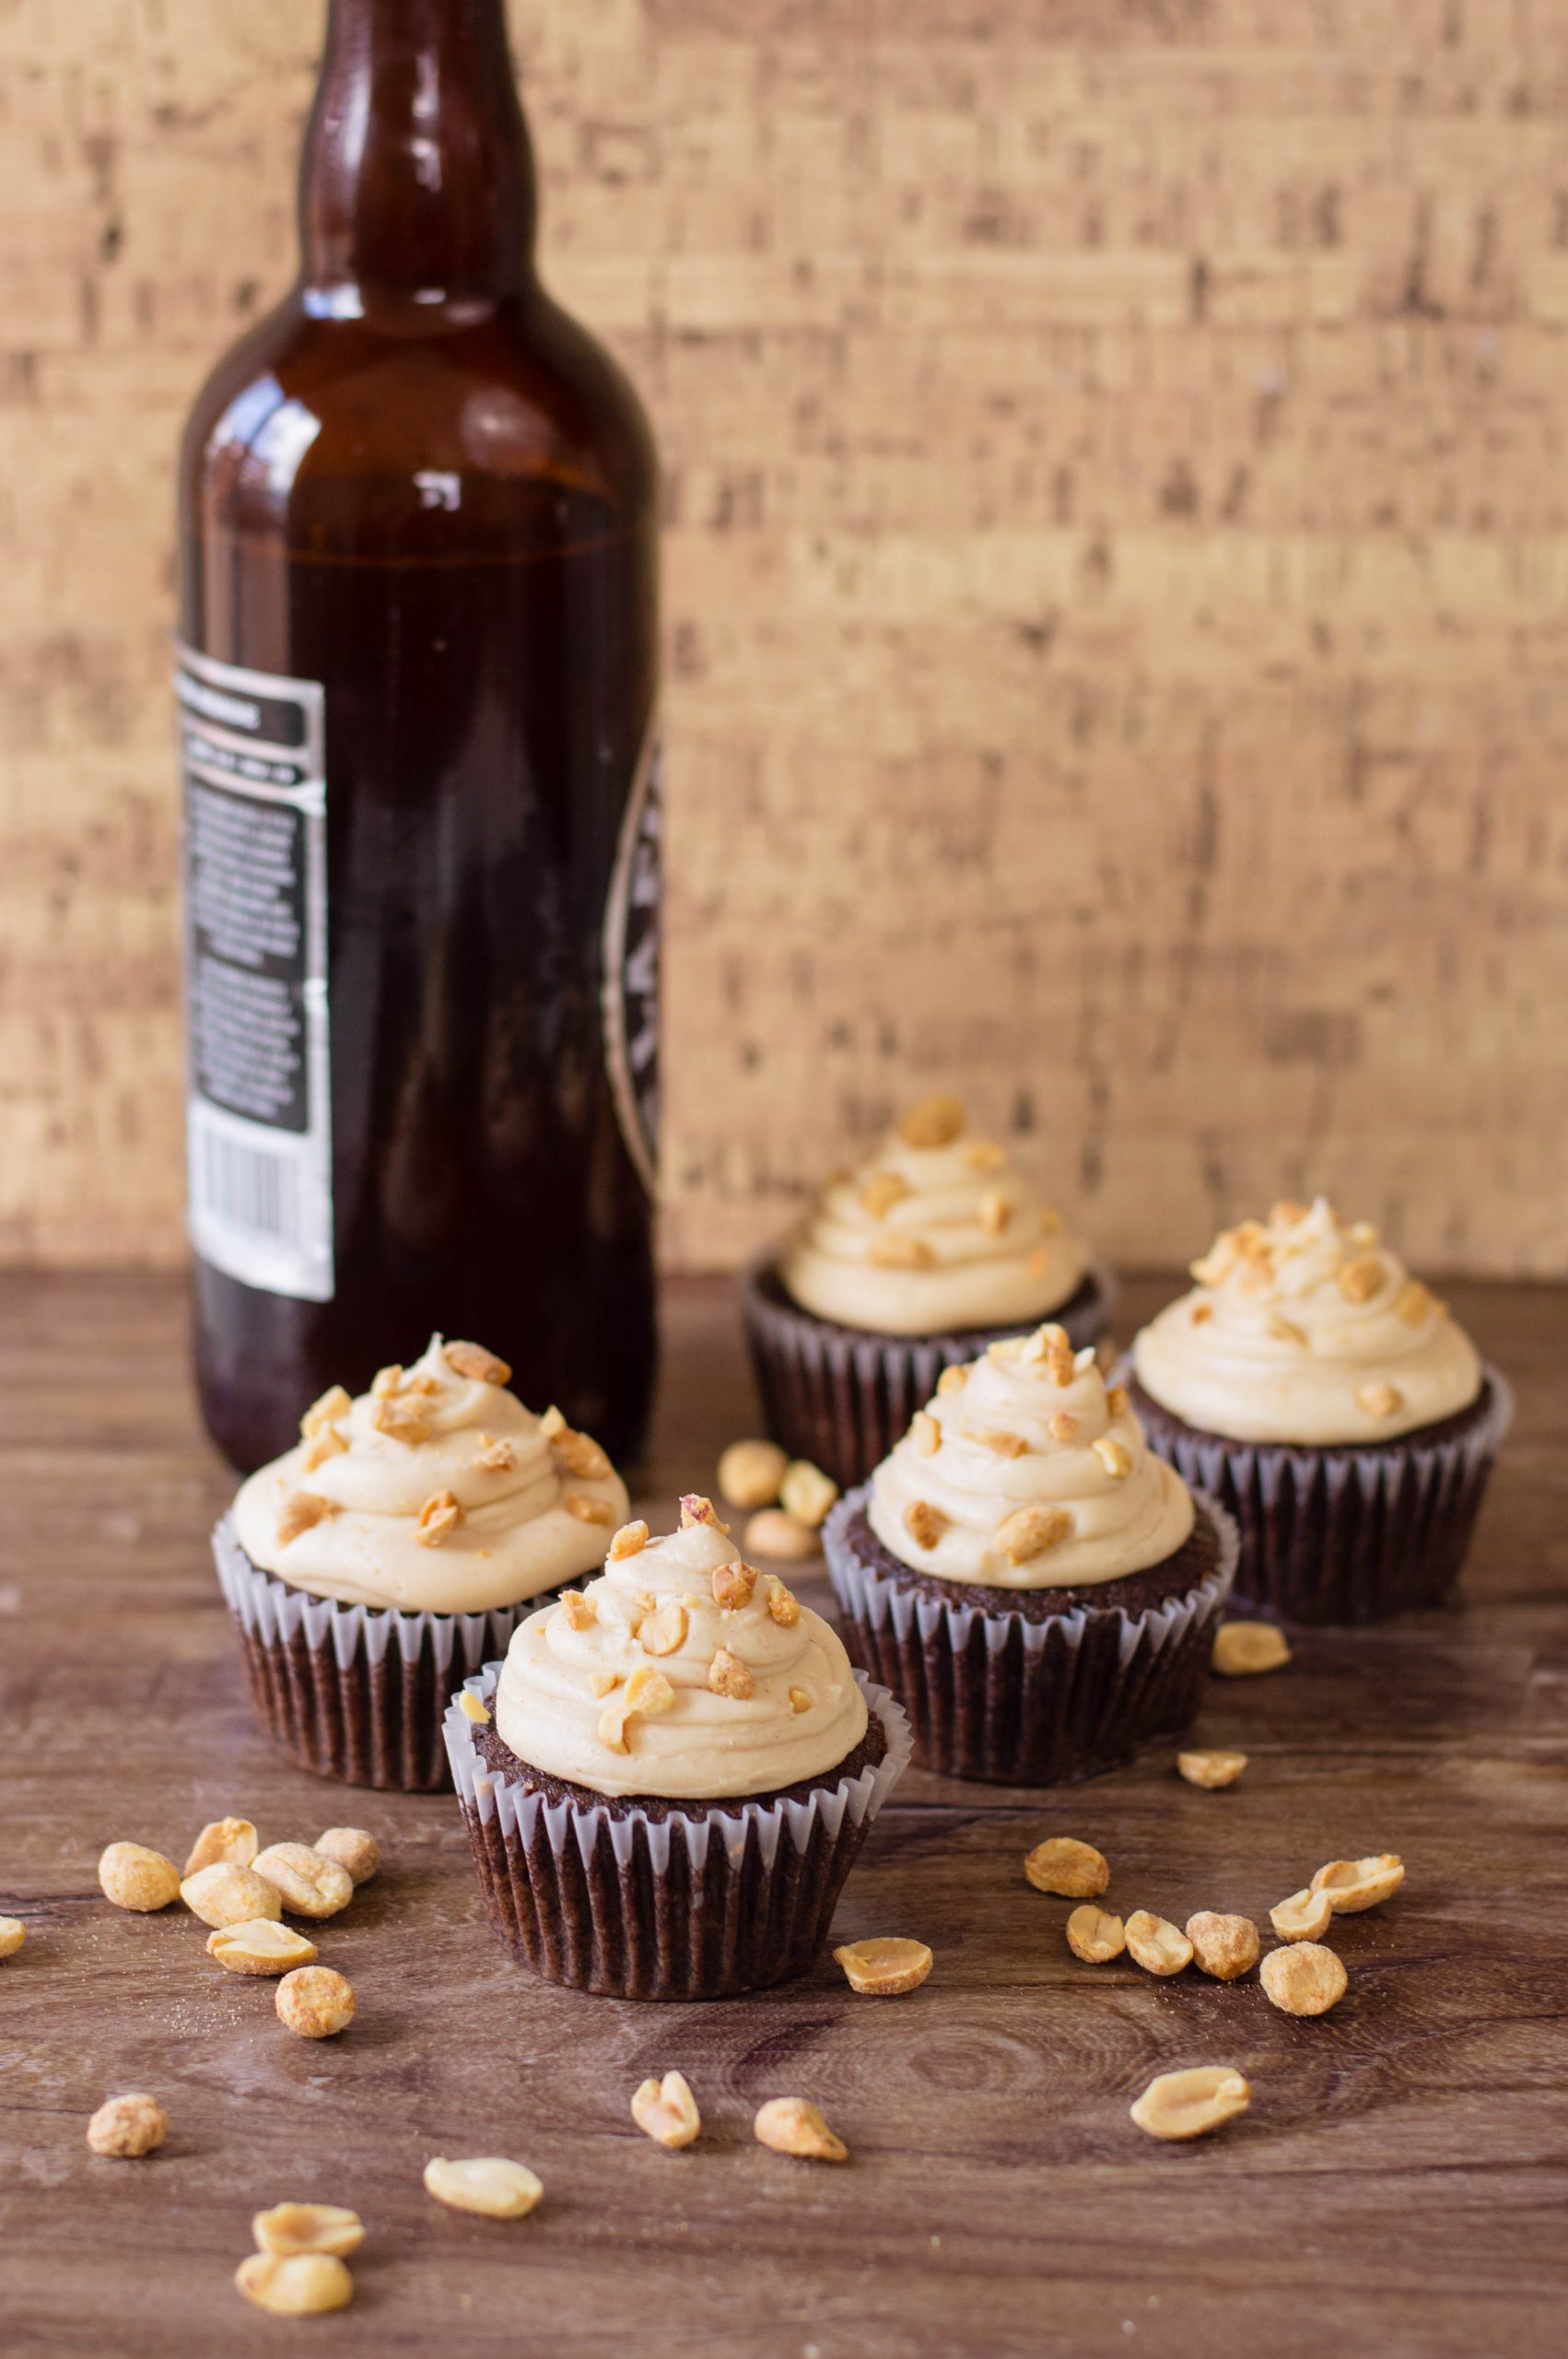 Chocolate Cupcakes with belgian beer.